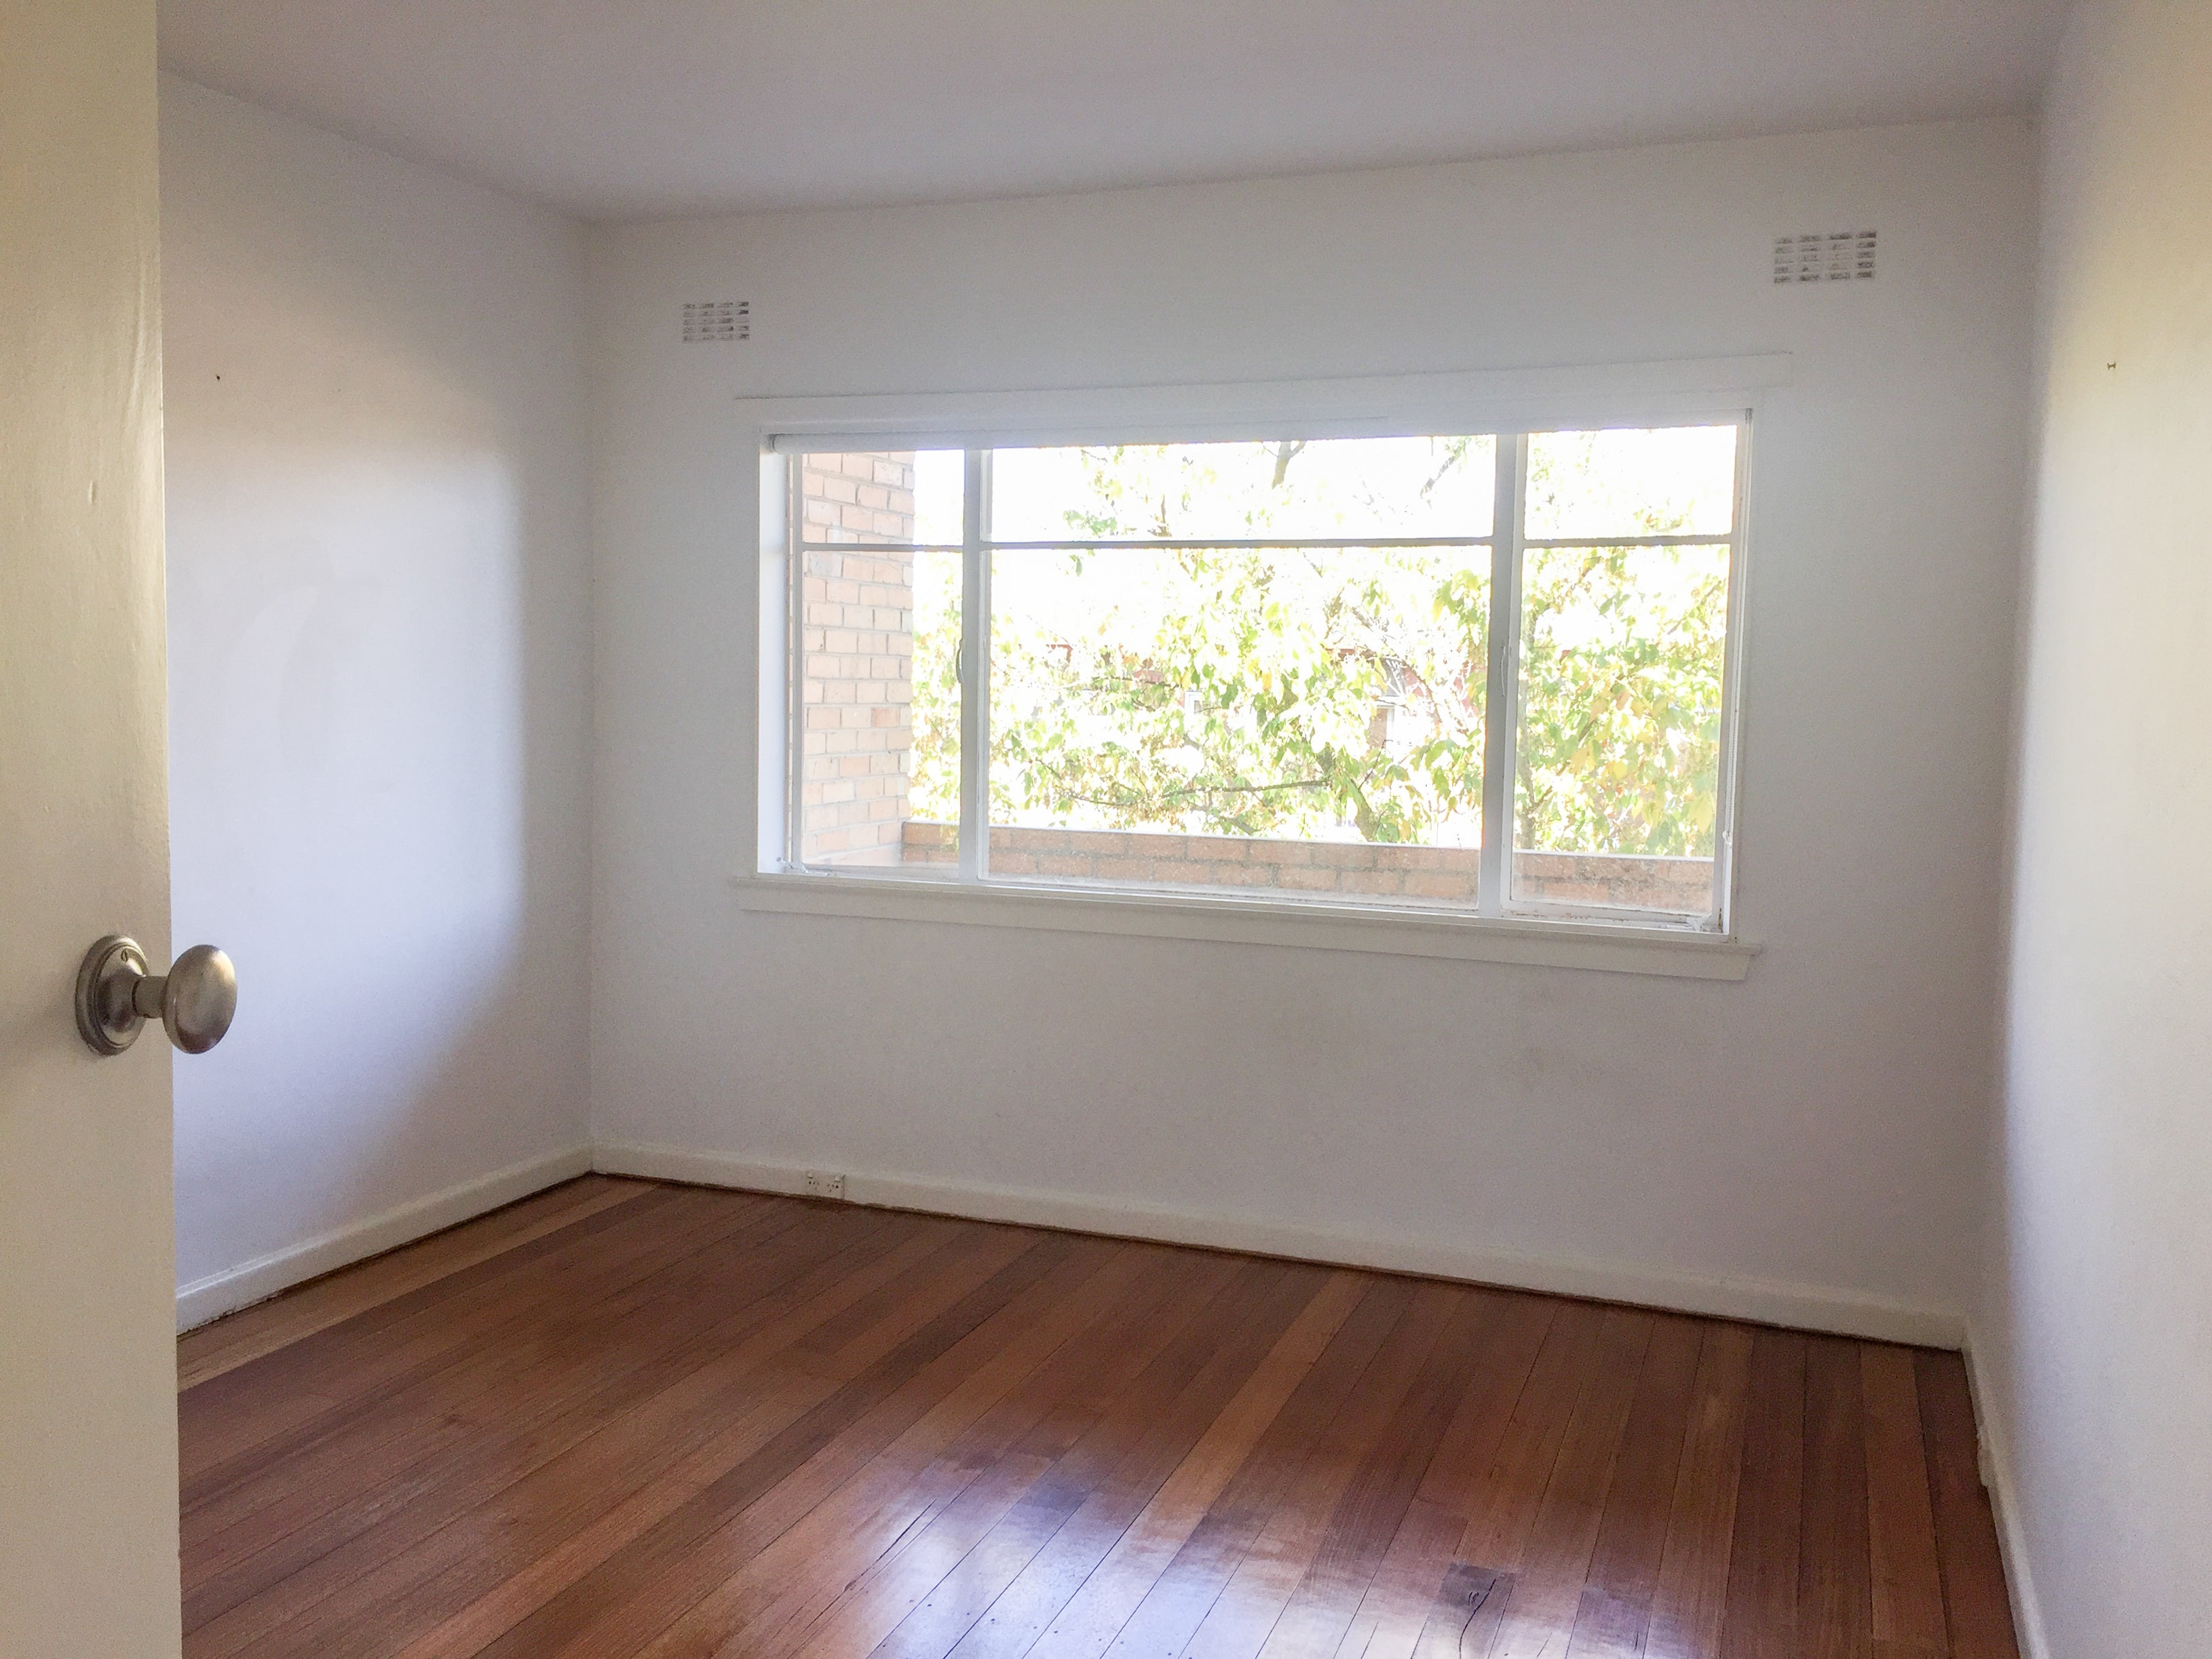 #littletoorak master bedroom before